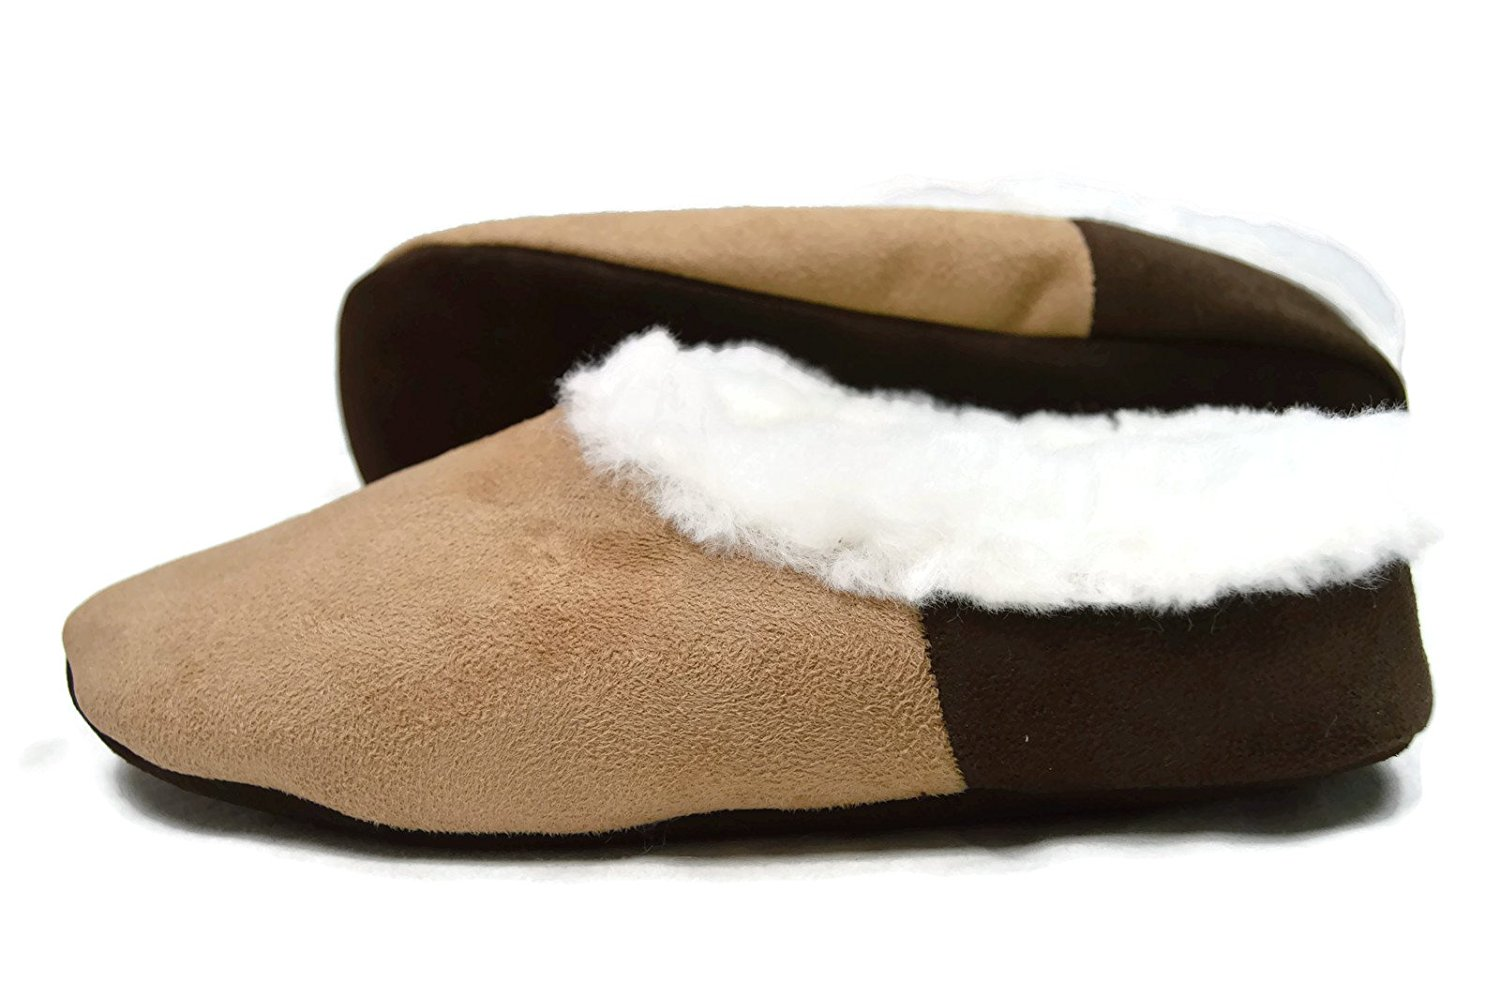 989dd3c2156 Get Quotations · Handmade 100% Alpaca fur slippers. Custom made to the  length of your foot!